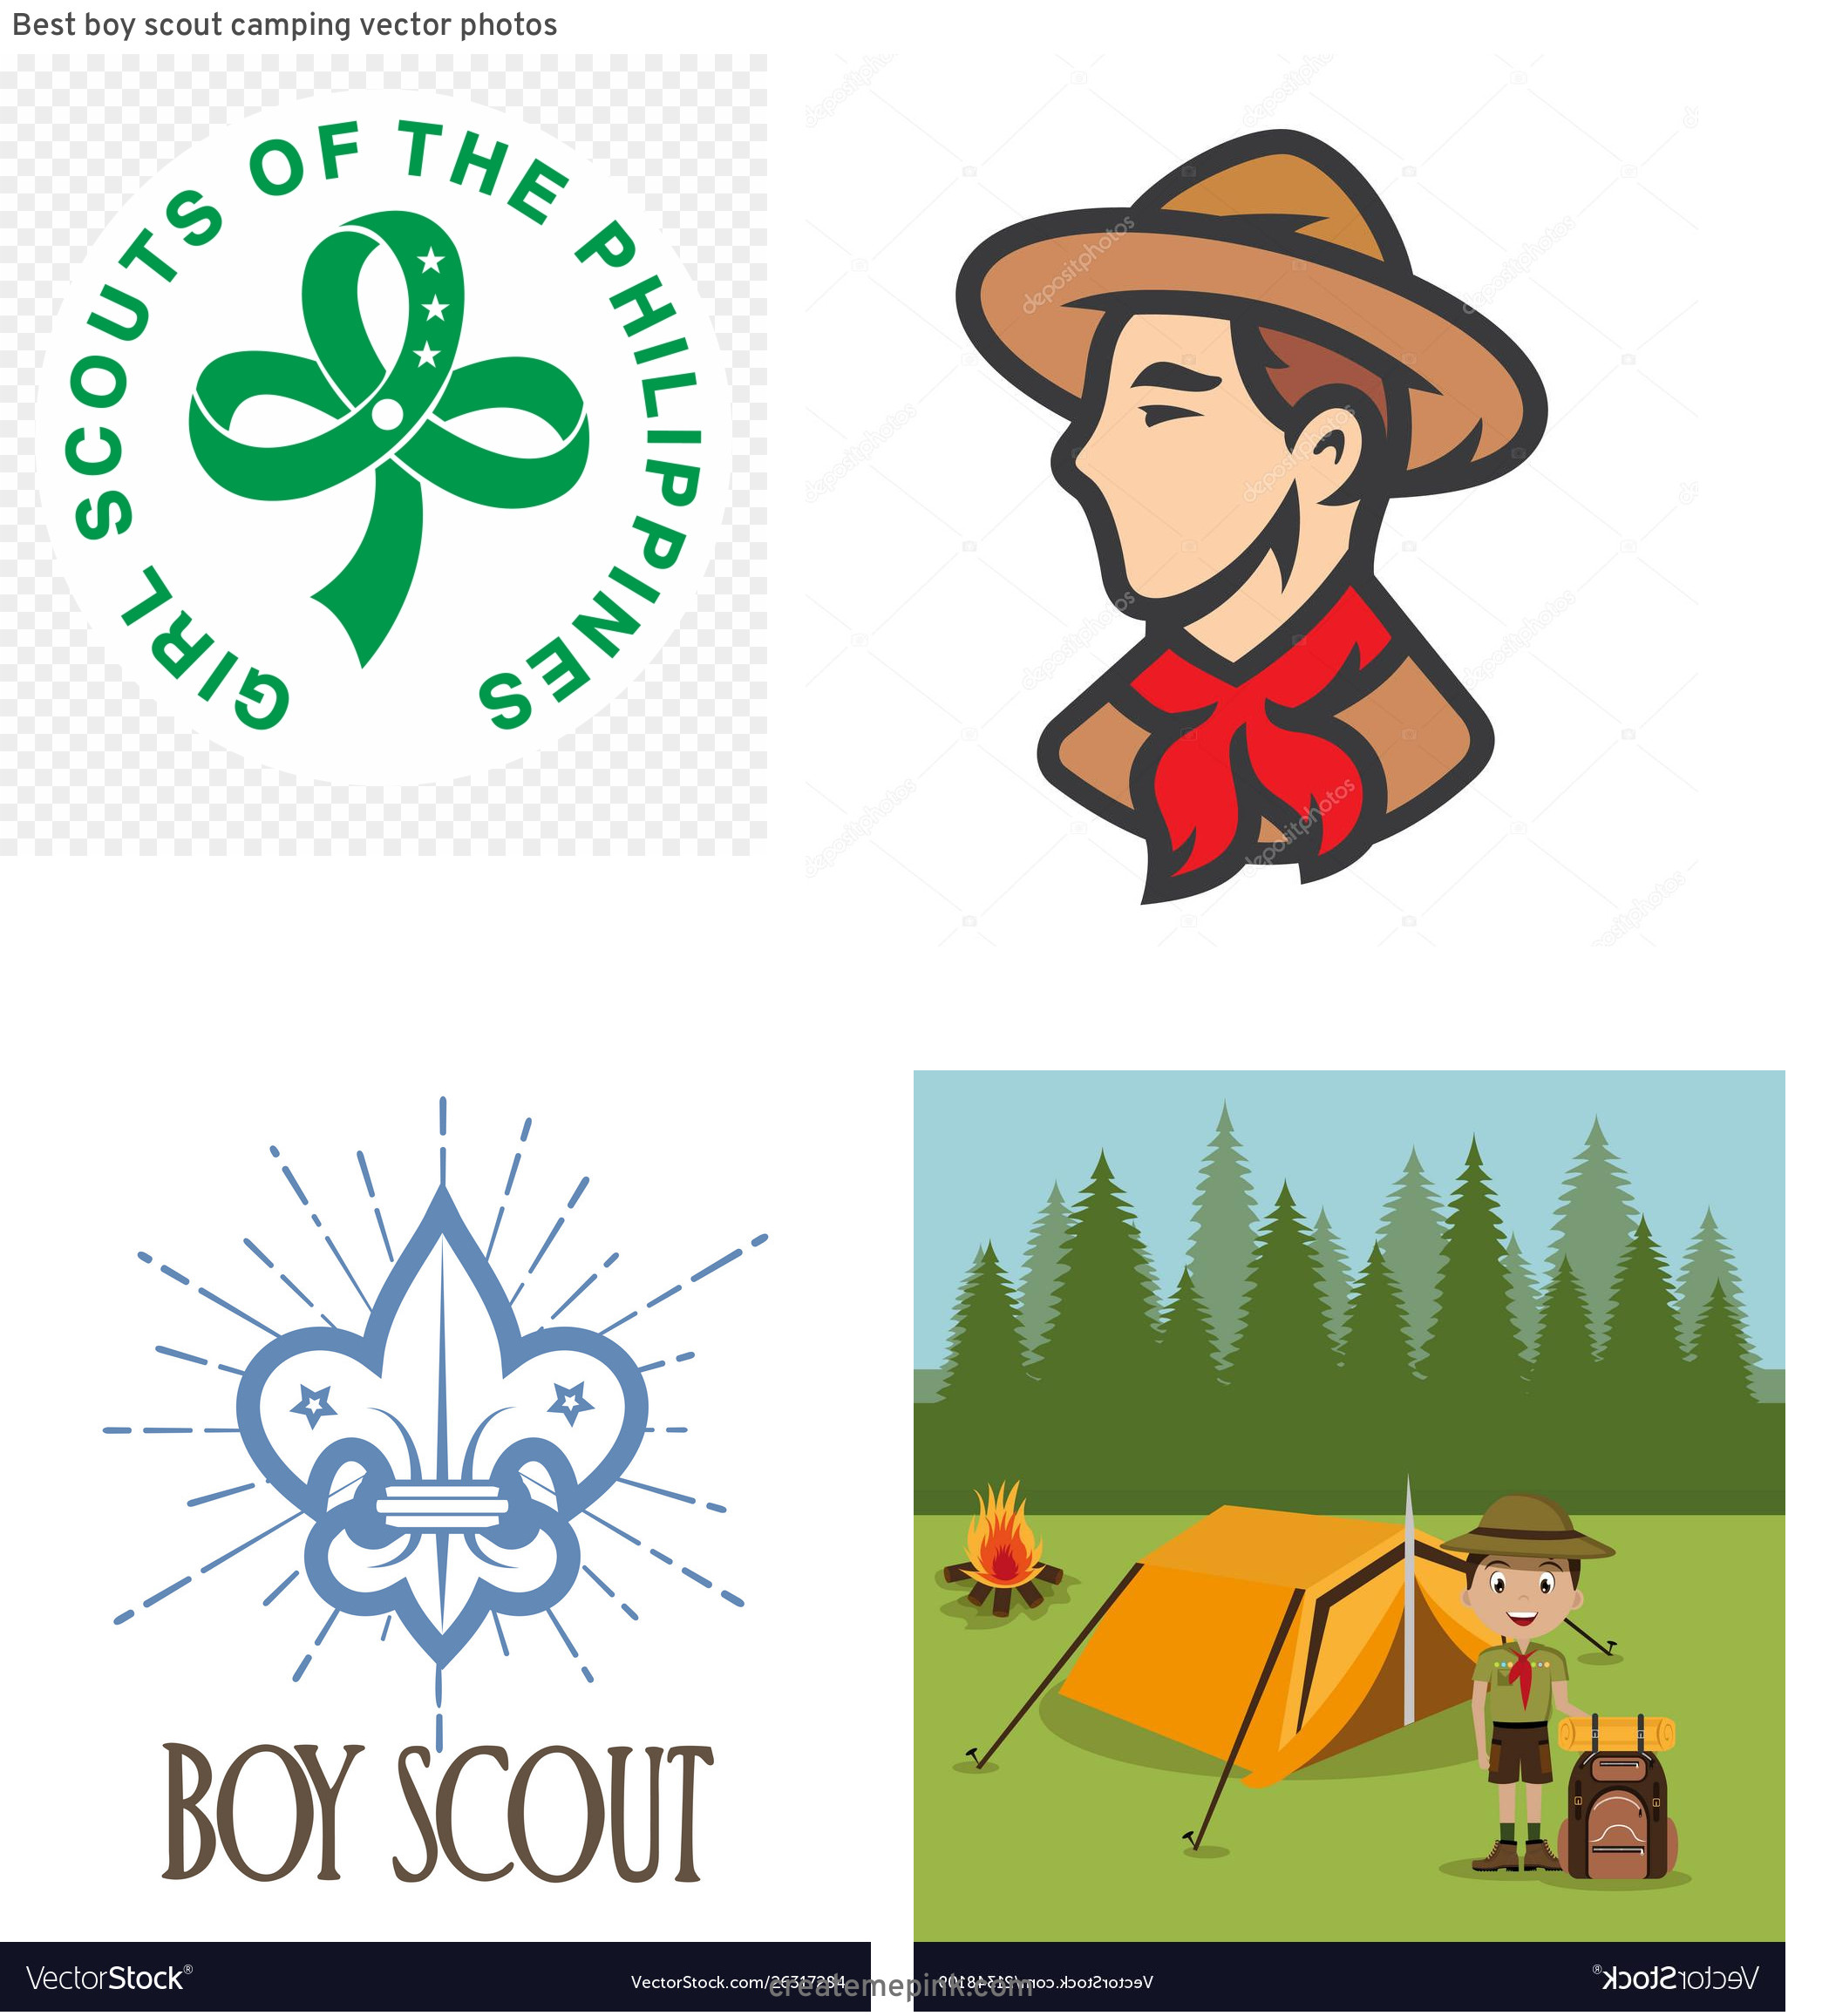 Boy Scout Logo Vector Art: Best Boy Scout Camping Vector Photos